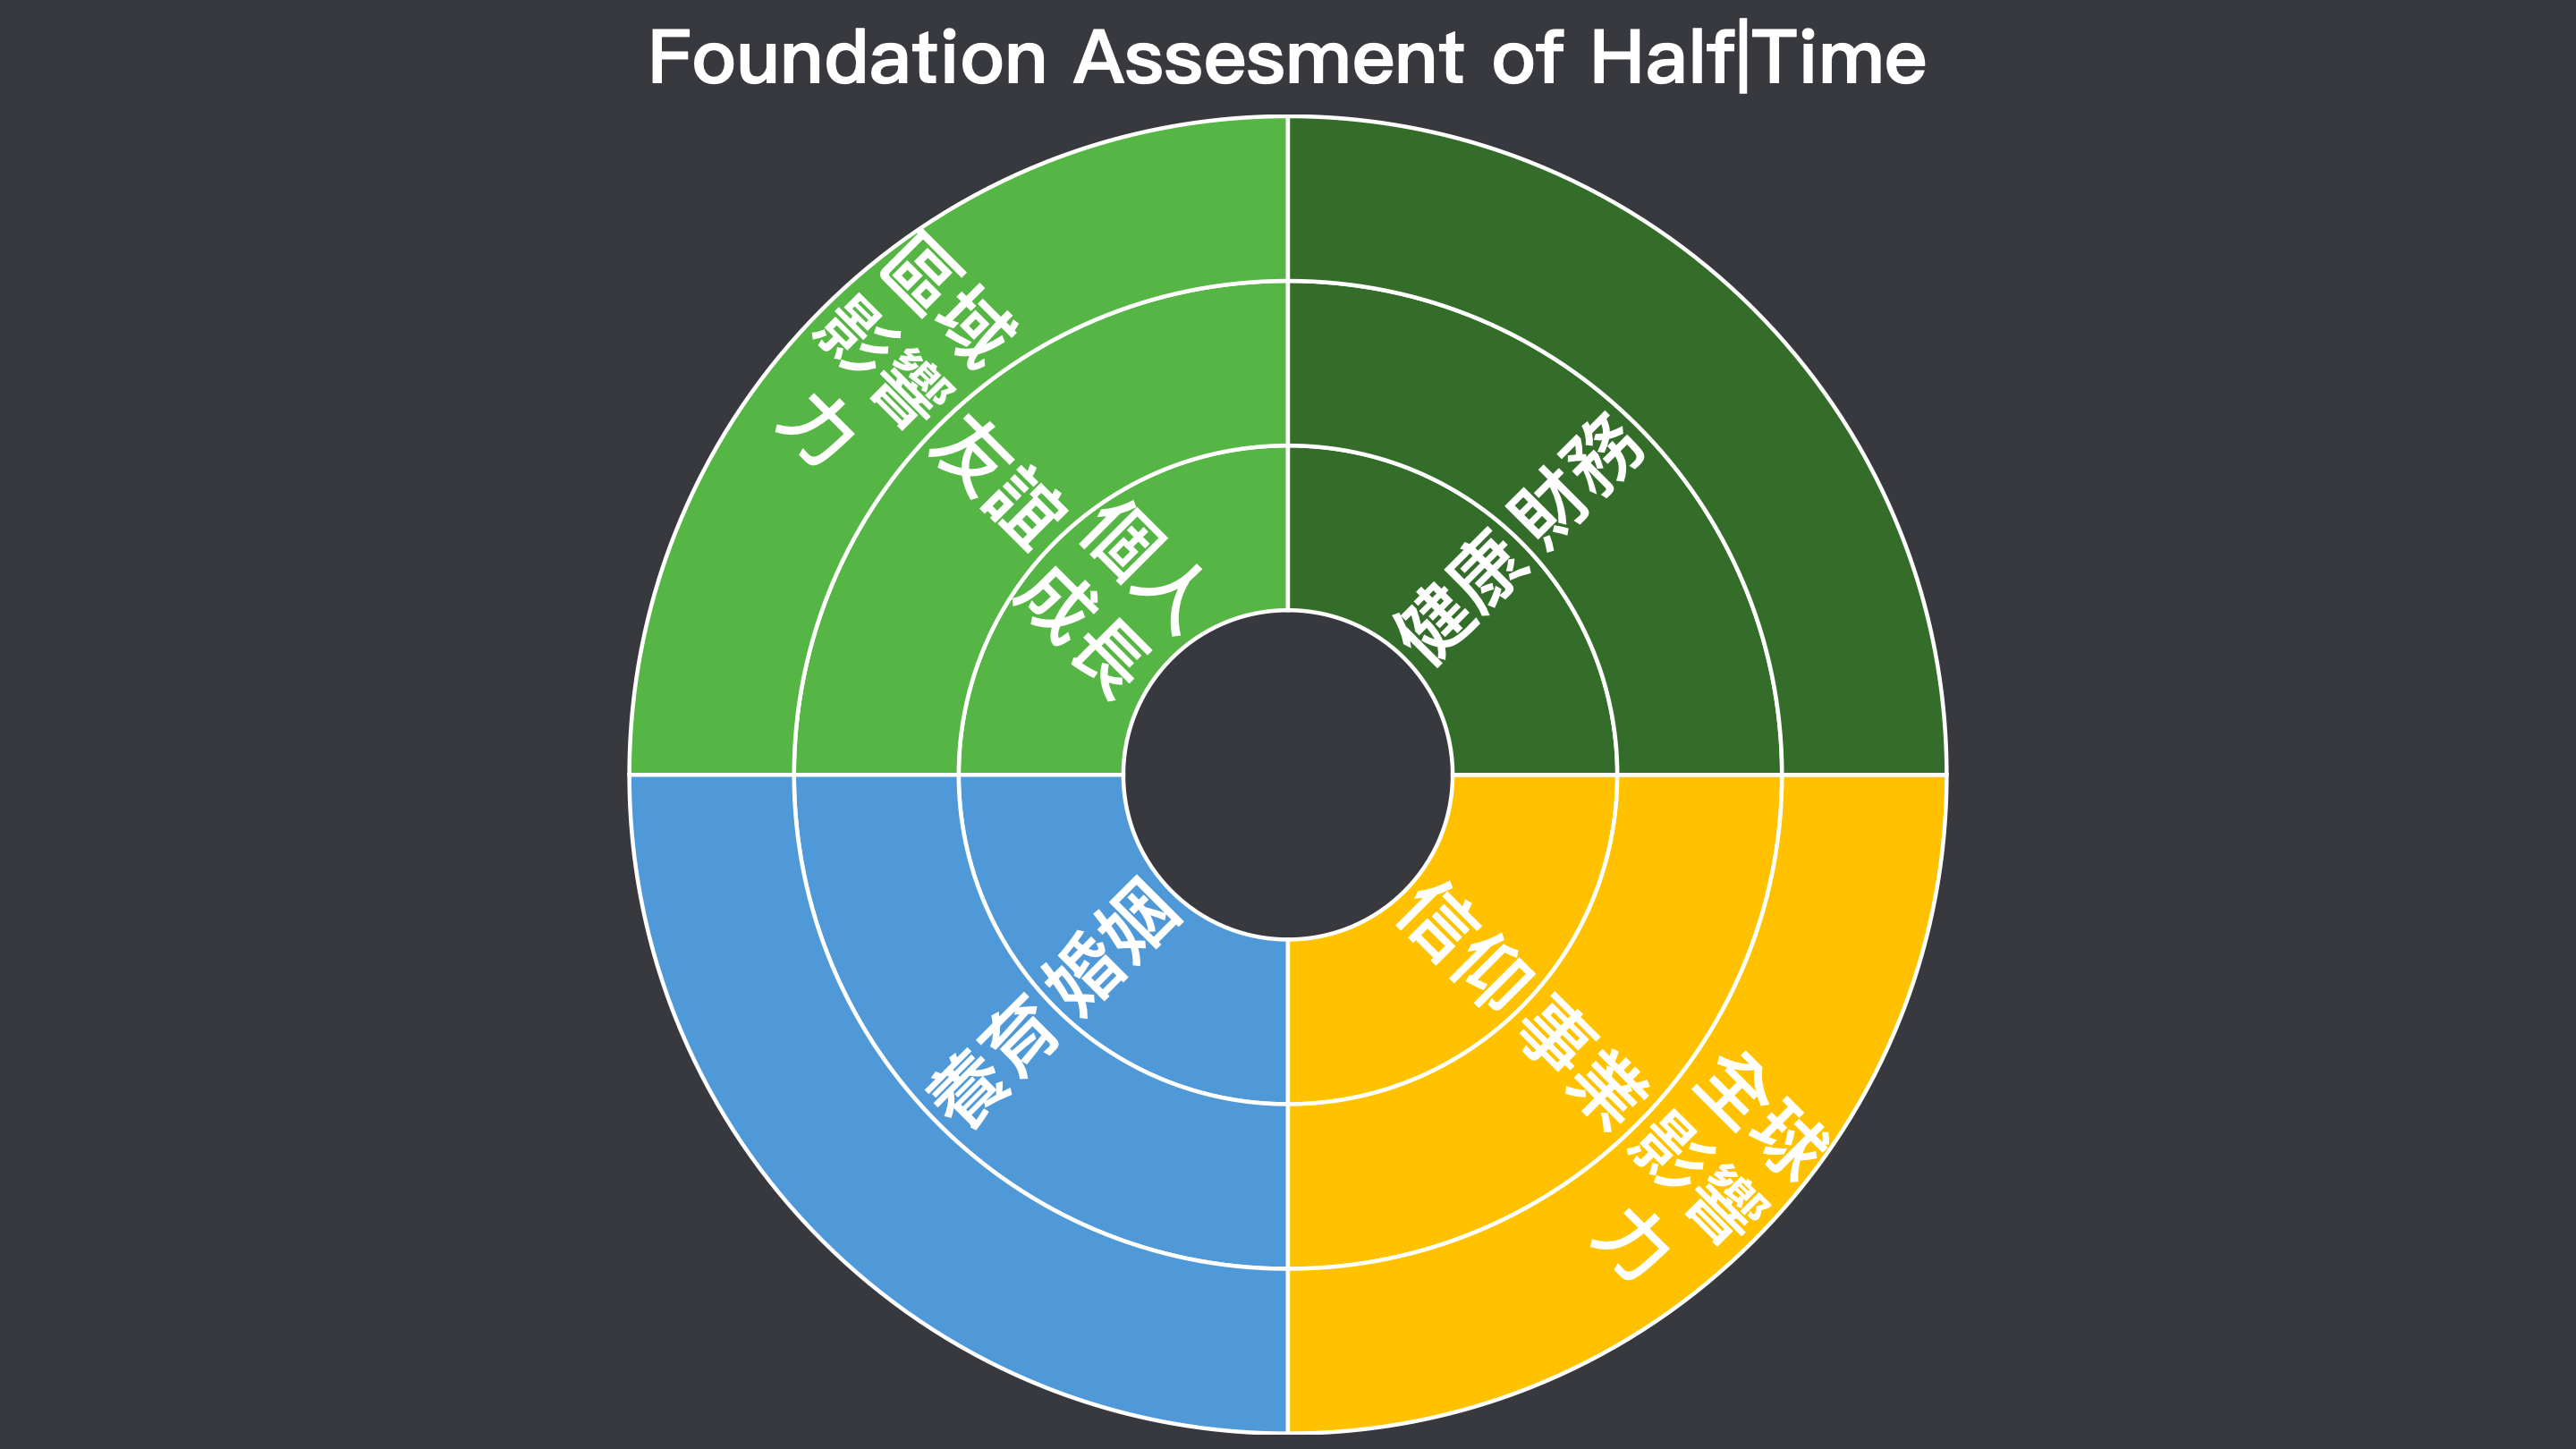 Halftime Foundation Assessment—The Halftime Institute